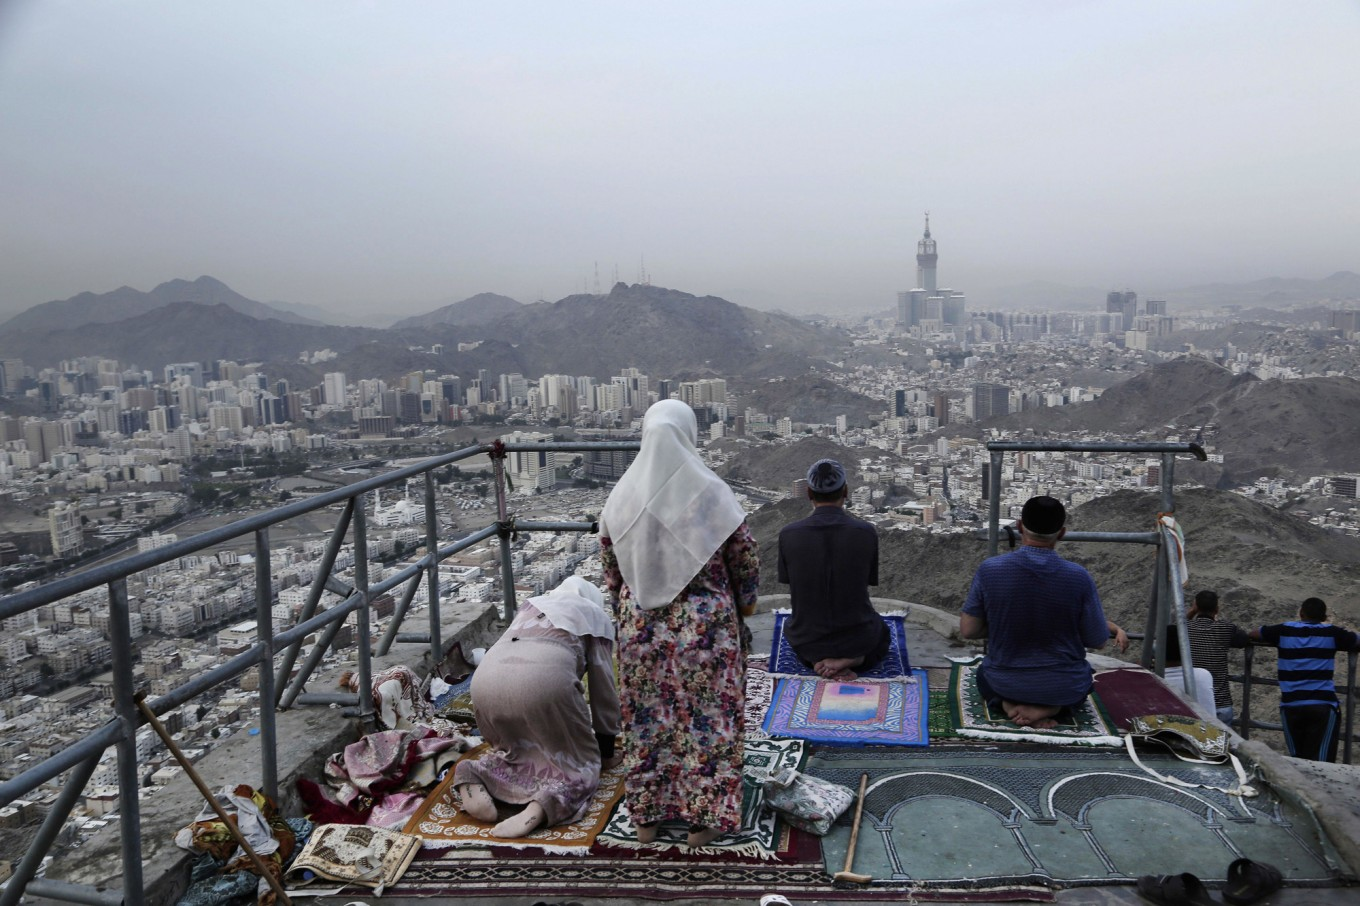 mountain view muslim dating site Falling in love is obviously not forbidden in islam, but 'dating' is not  is dating or falling in love prohibited in islam update cancel  546k views view.